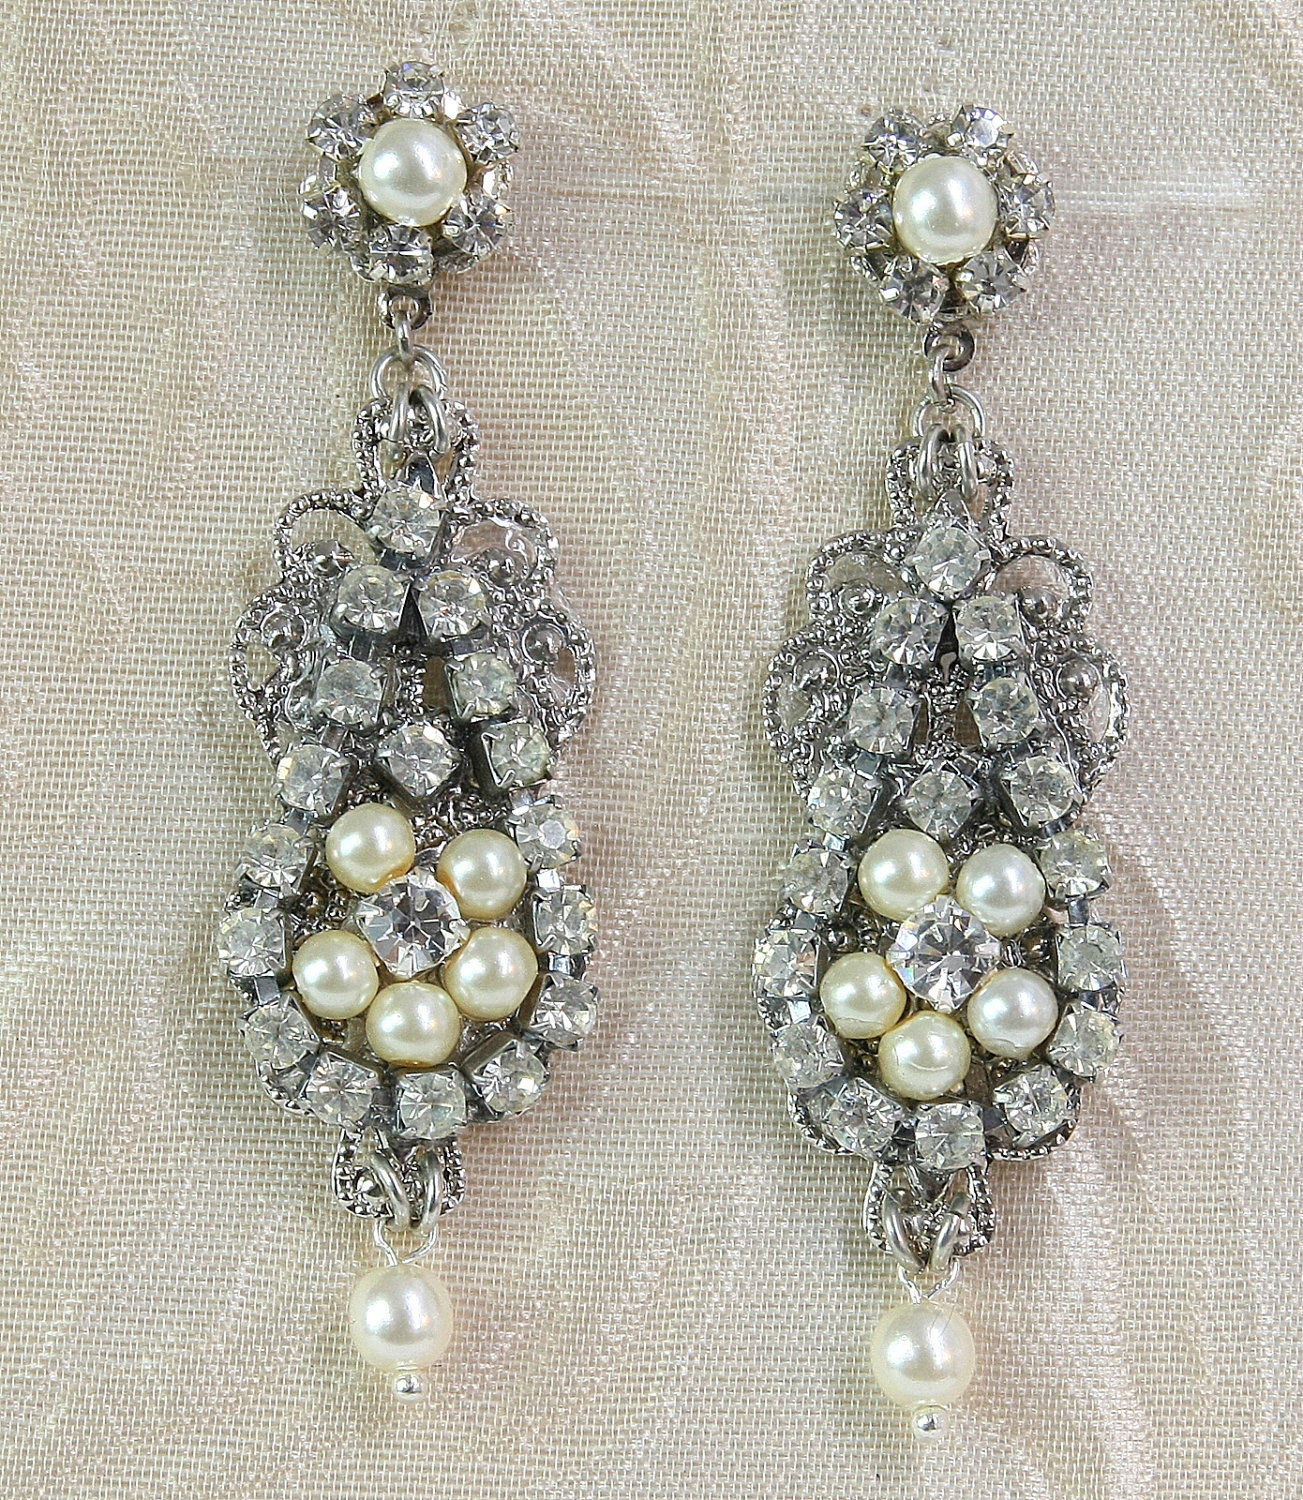 Chandelier earrings lia efrat davidsohn chandelier earrings vintage style rhinestone earringsdeco lia arubaitofo Gallery